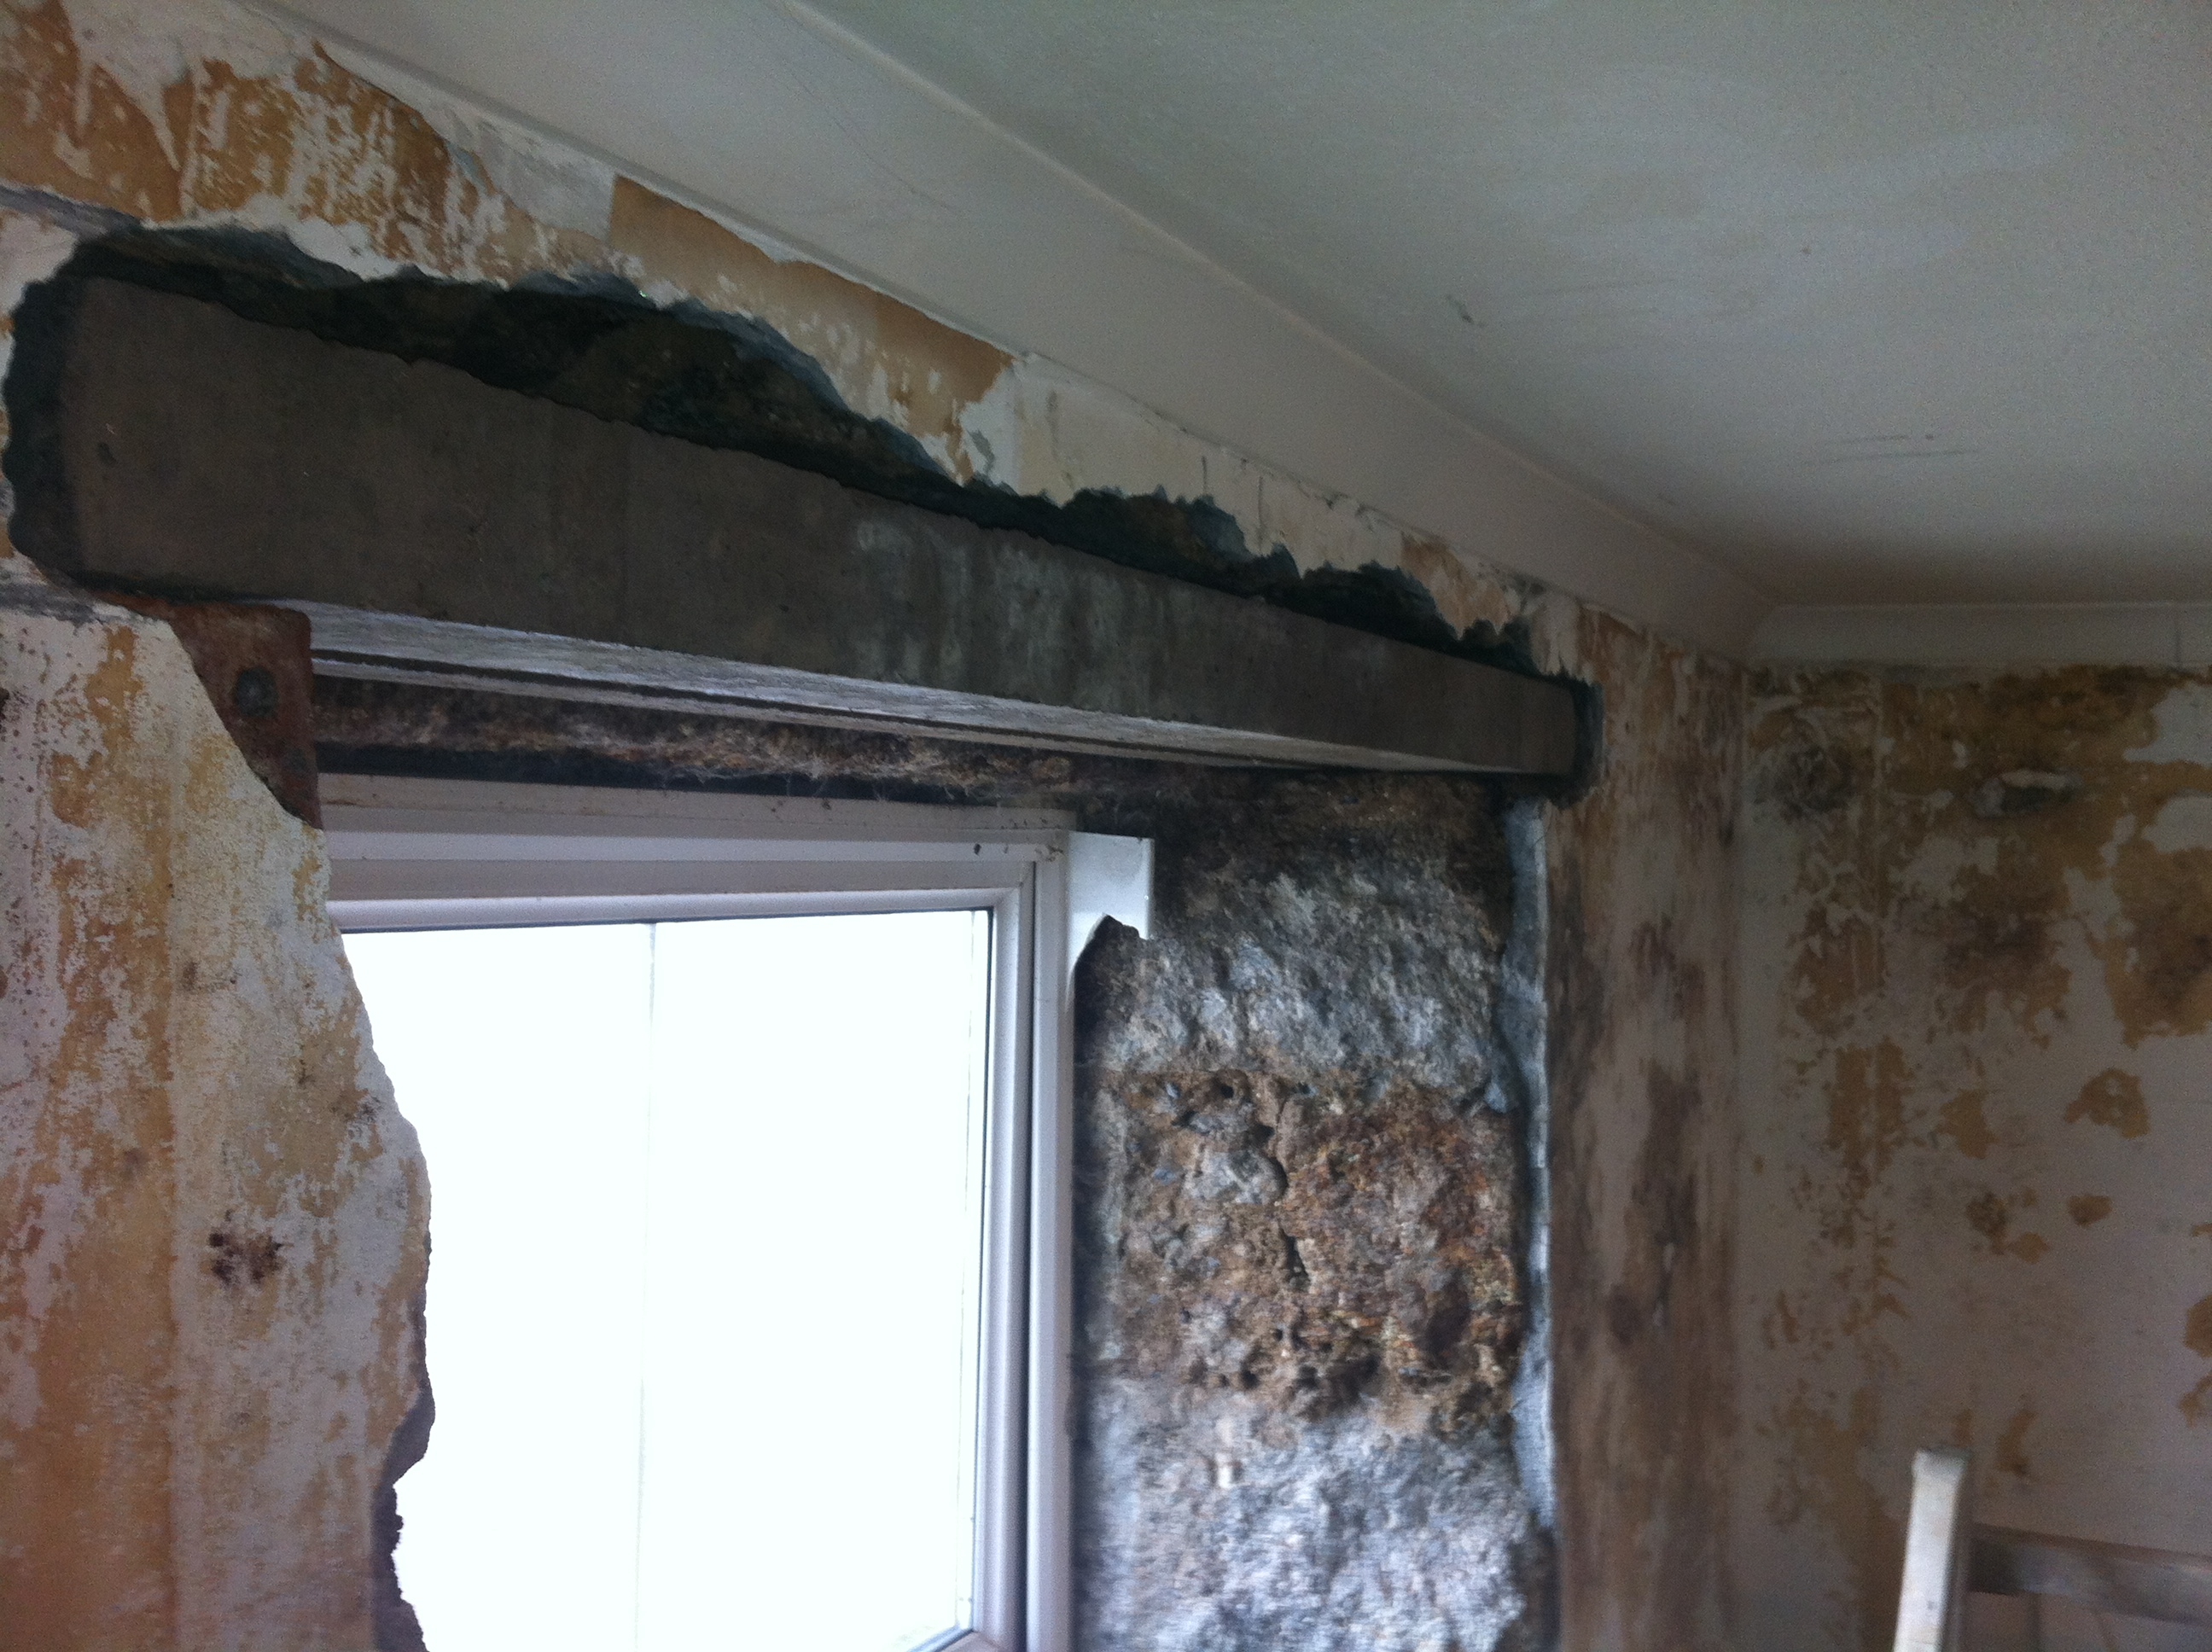 Many Of The Internal Wooden Window Lintels Had Rotted Out